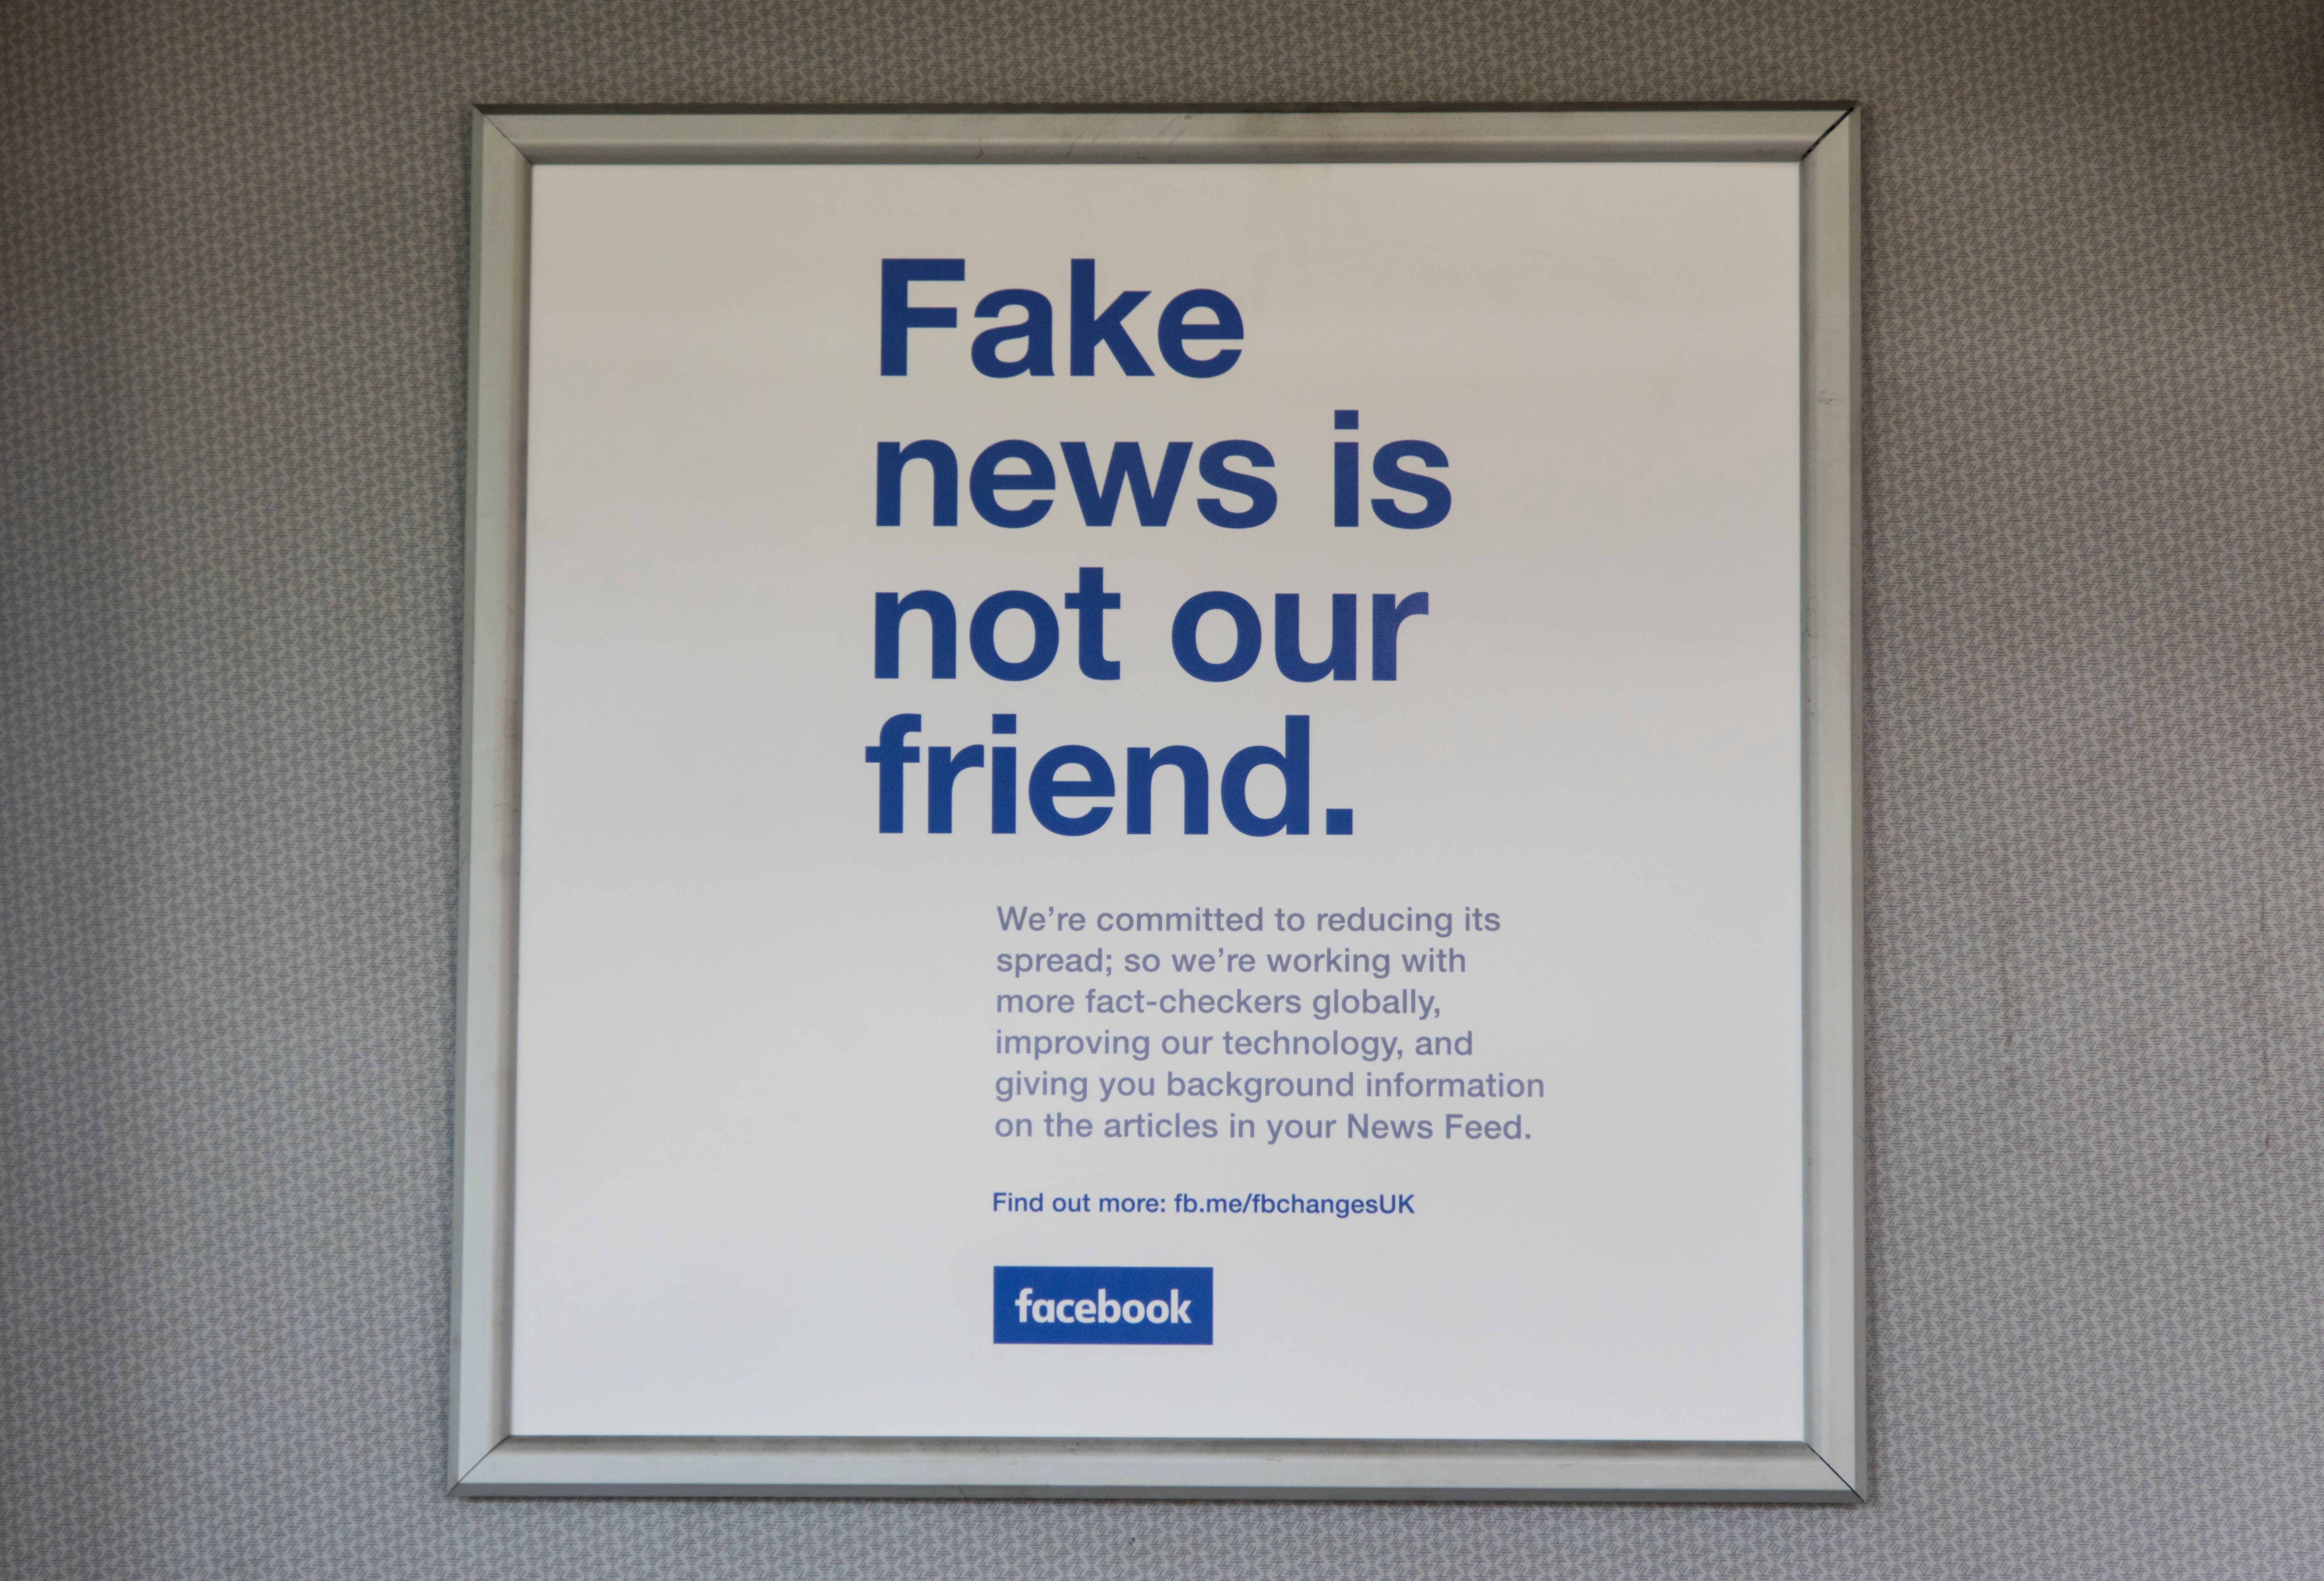 file 20190508 183103 1tvm9u7.jpg?ixlib=rb 1.1 - Facebook wants to combat fake news with ID checks – with 'grave implications' for our privacy